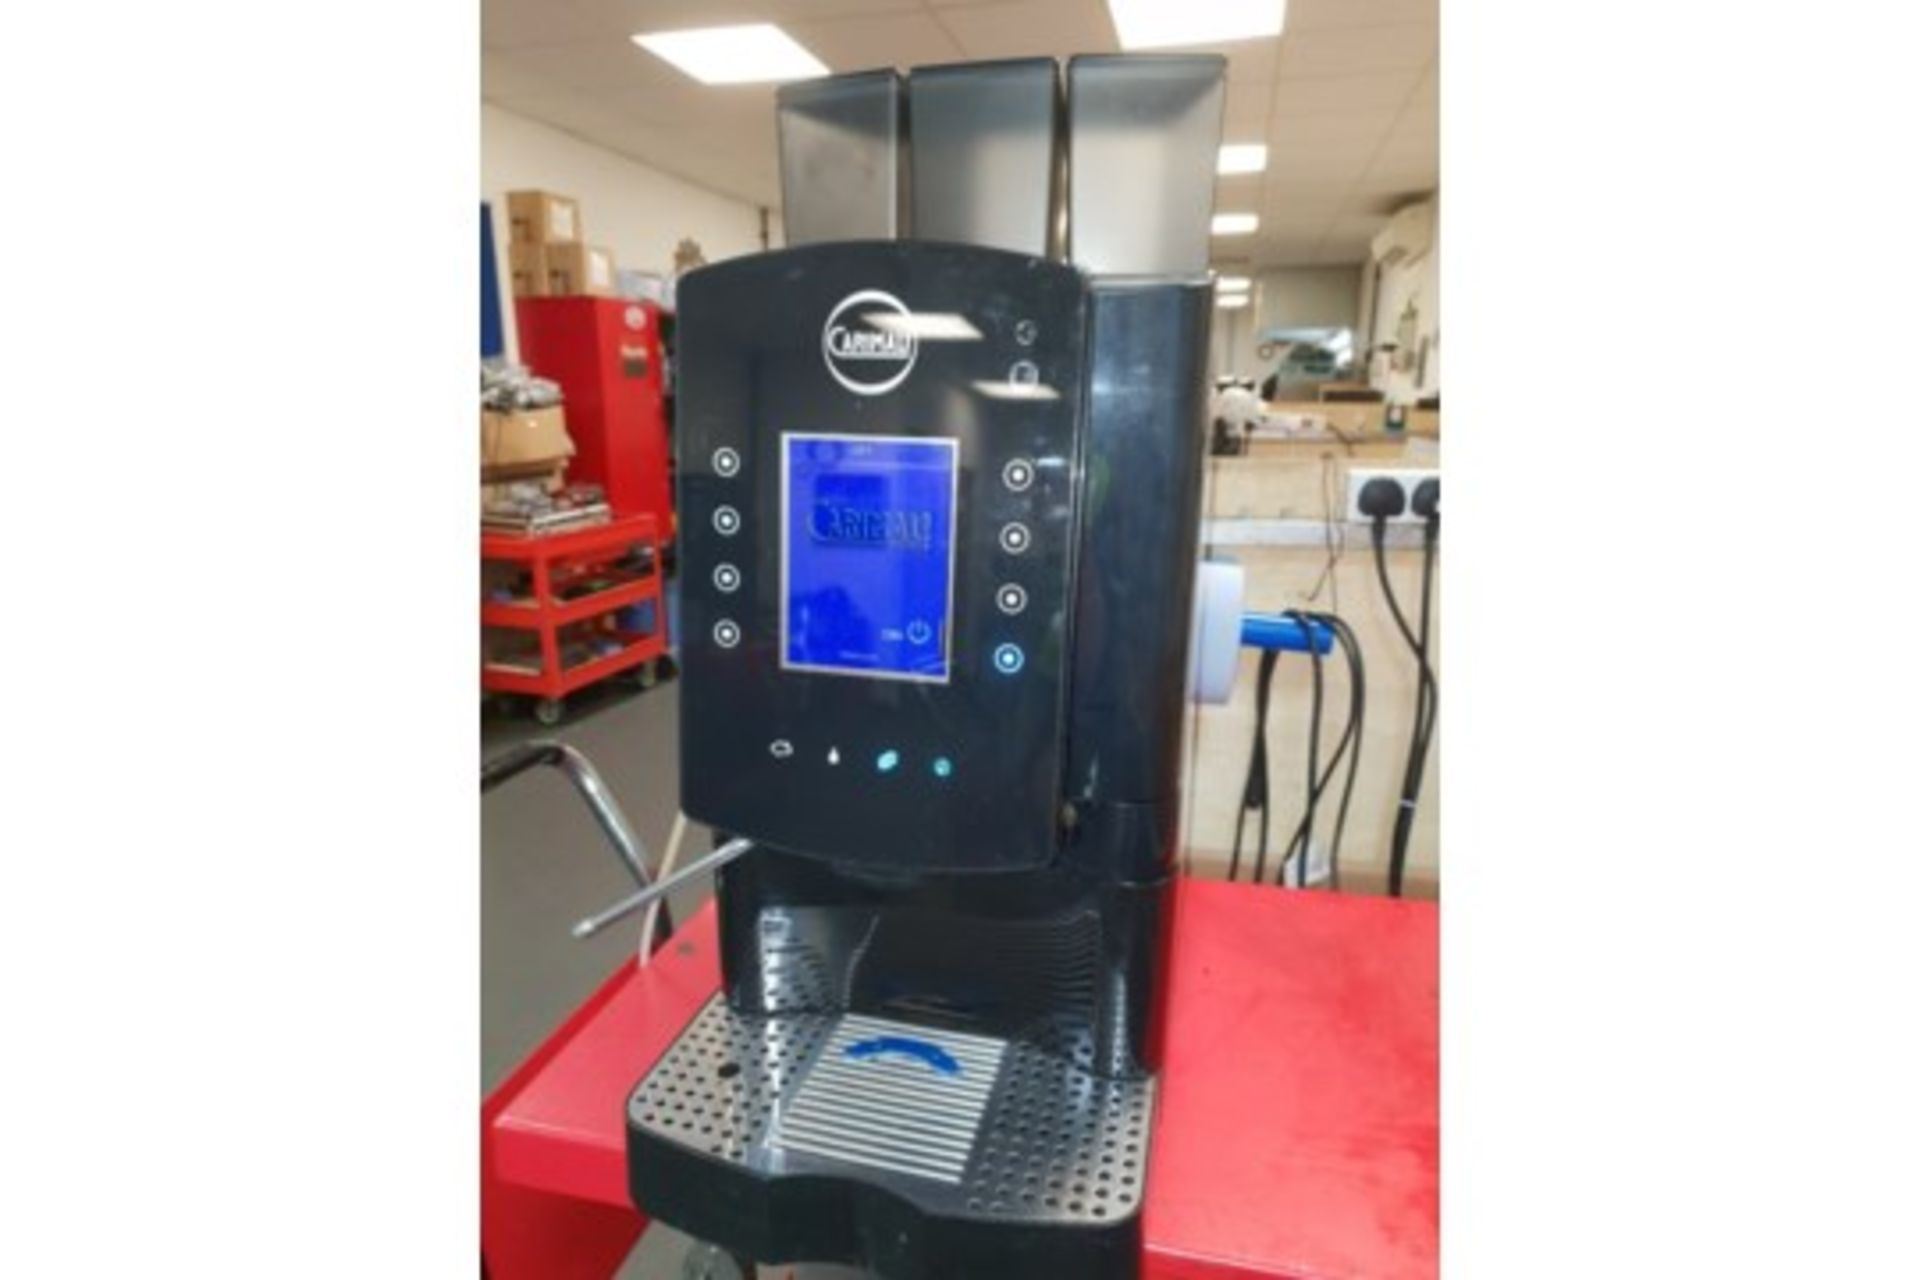 Lot 17 - Carimali Solar Touch Drinks Machine – Bean to cup Coffee + Chocolate & Other Drinks The Carimali